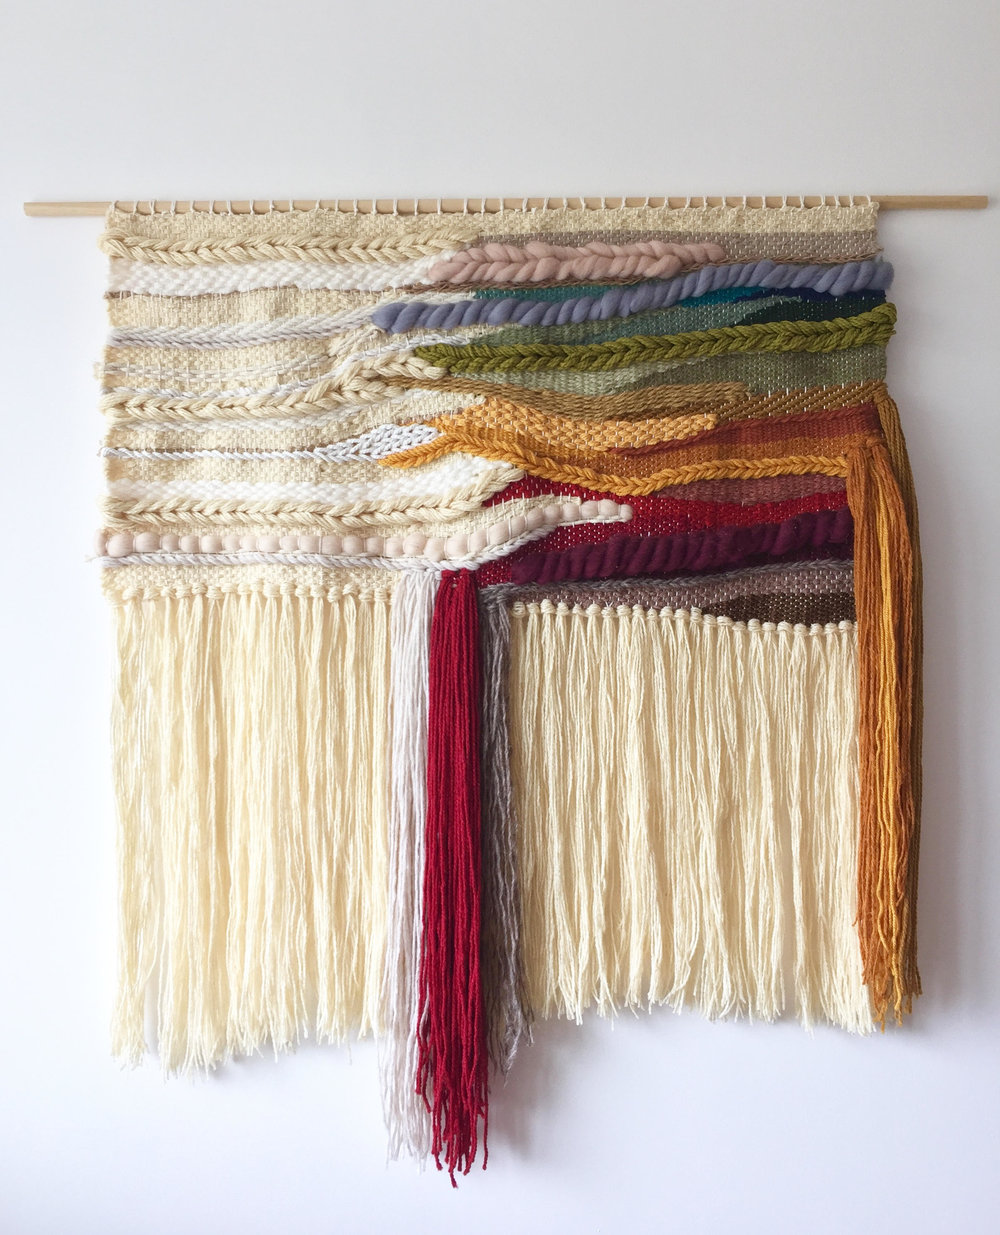 Paper_and_Moon_Louise_Dockery_interior_design_Dublin_Ireland_wall_hanging_macrame_weaving_Weaverella_Emma_Carroll.jpg